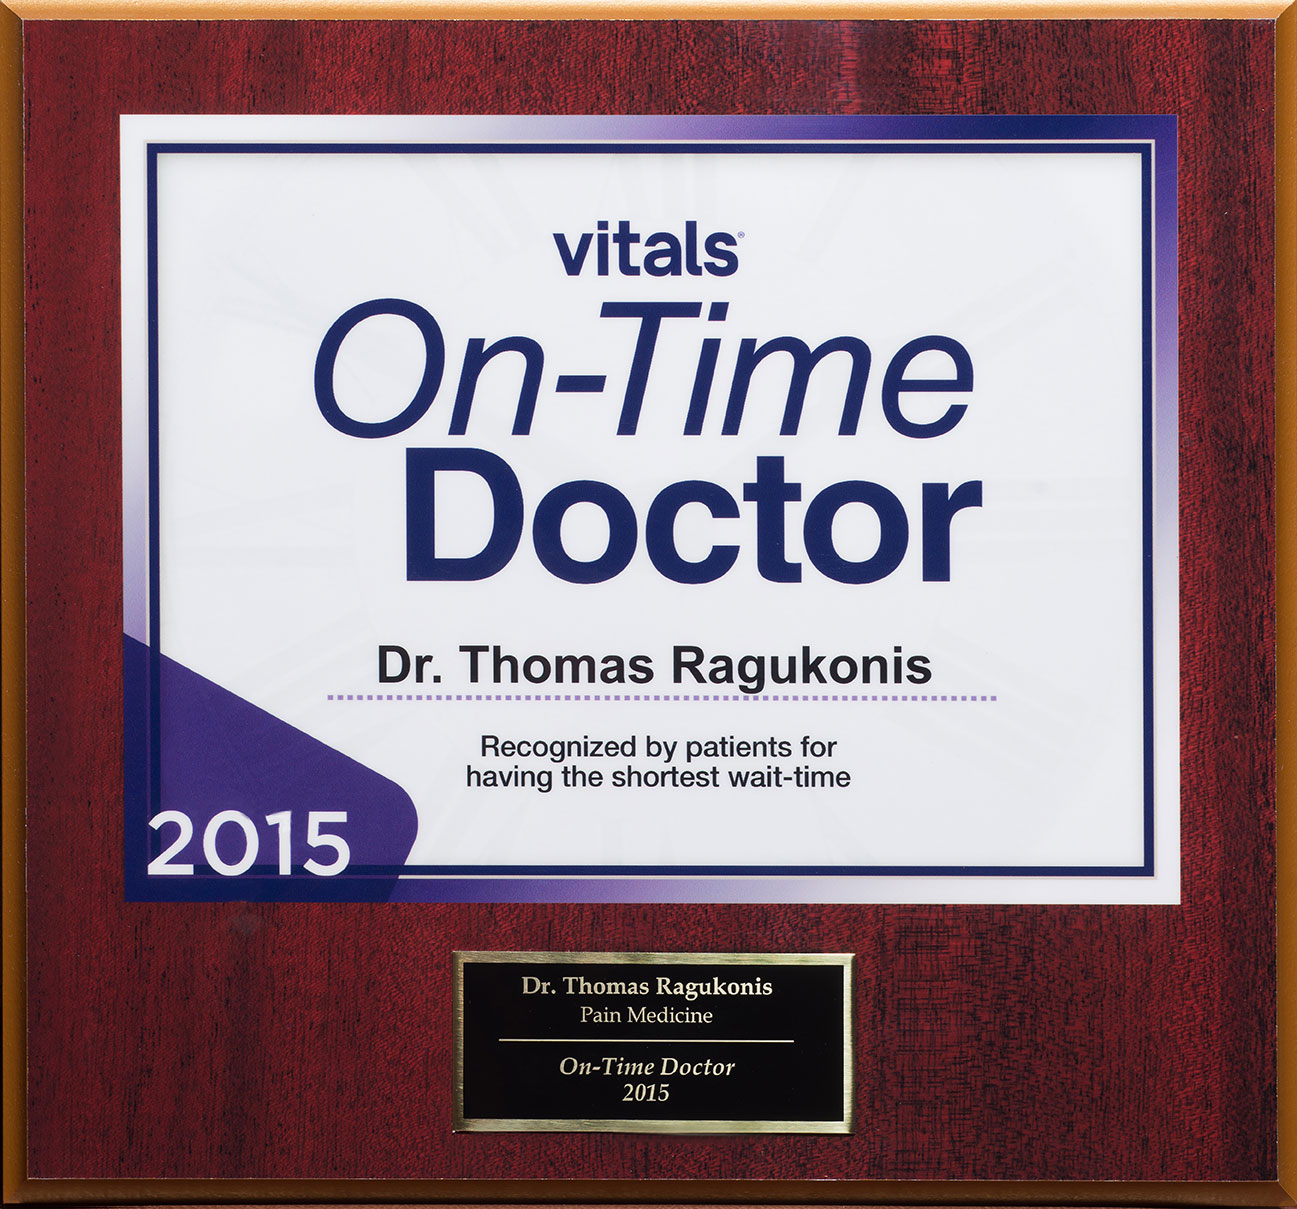 Vitals On-Time Doctor 2015